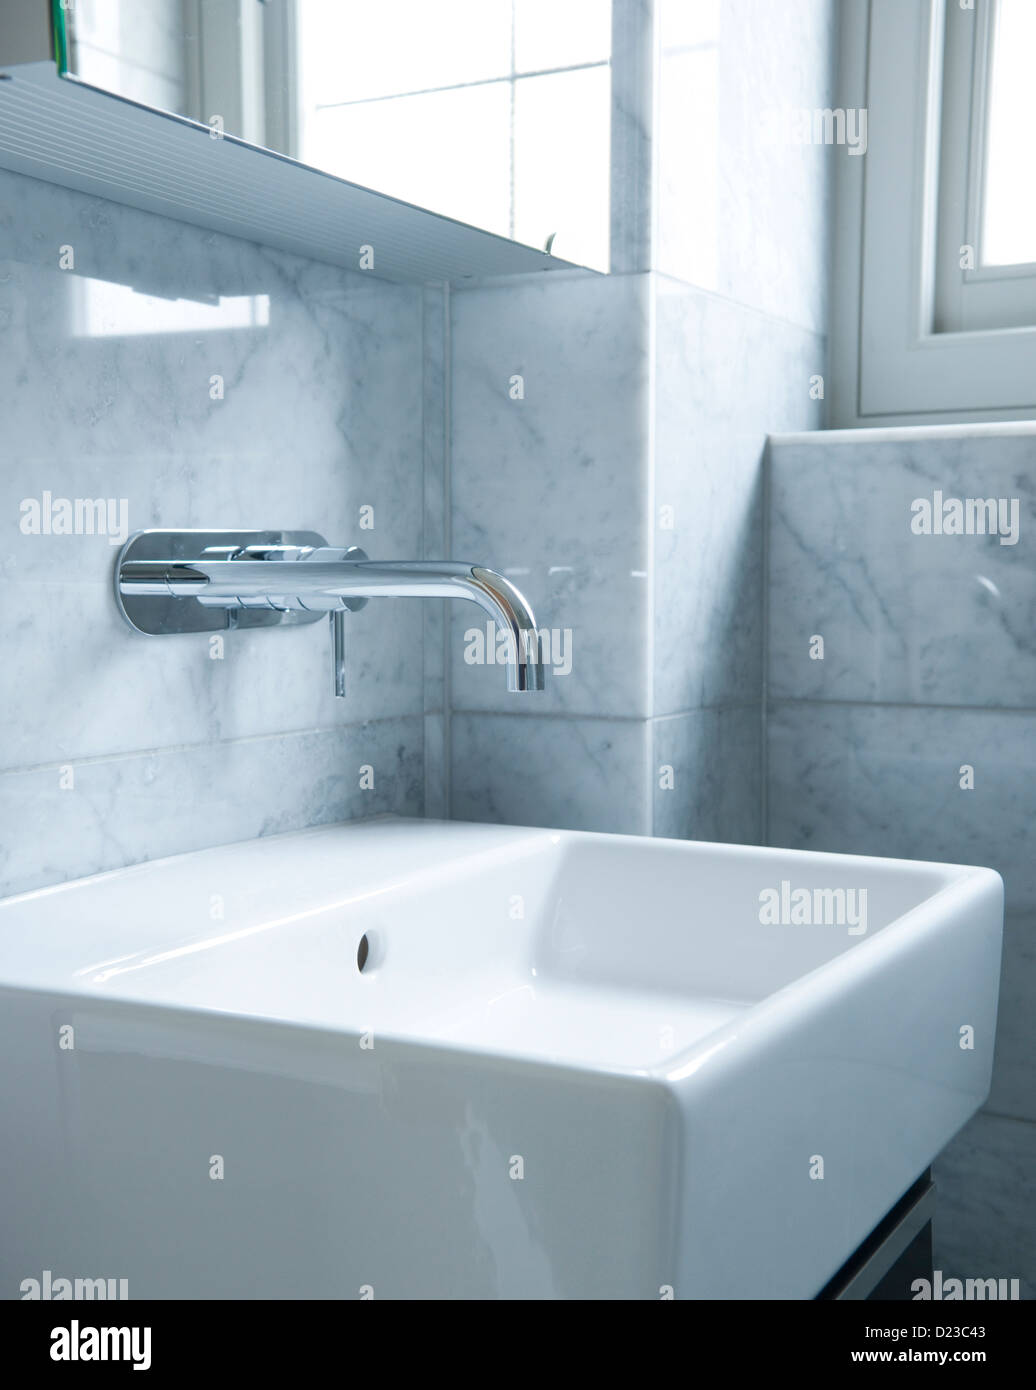 A bathroom sink with chrome tap and tiled walls Stock Photo ...